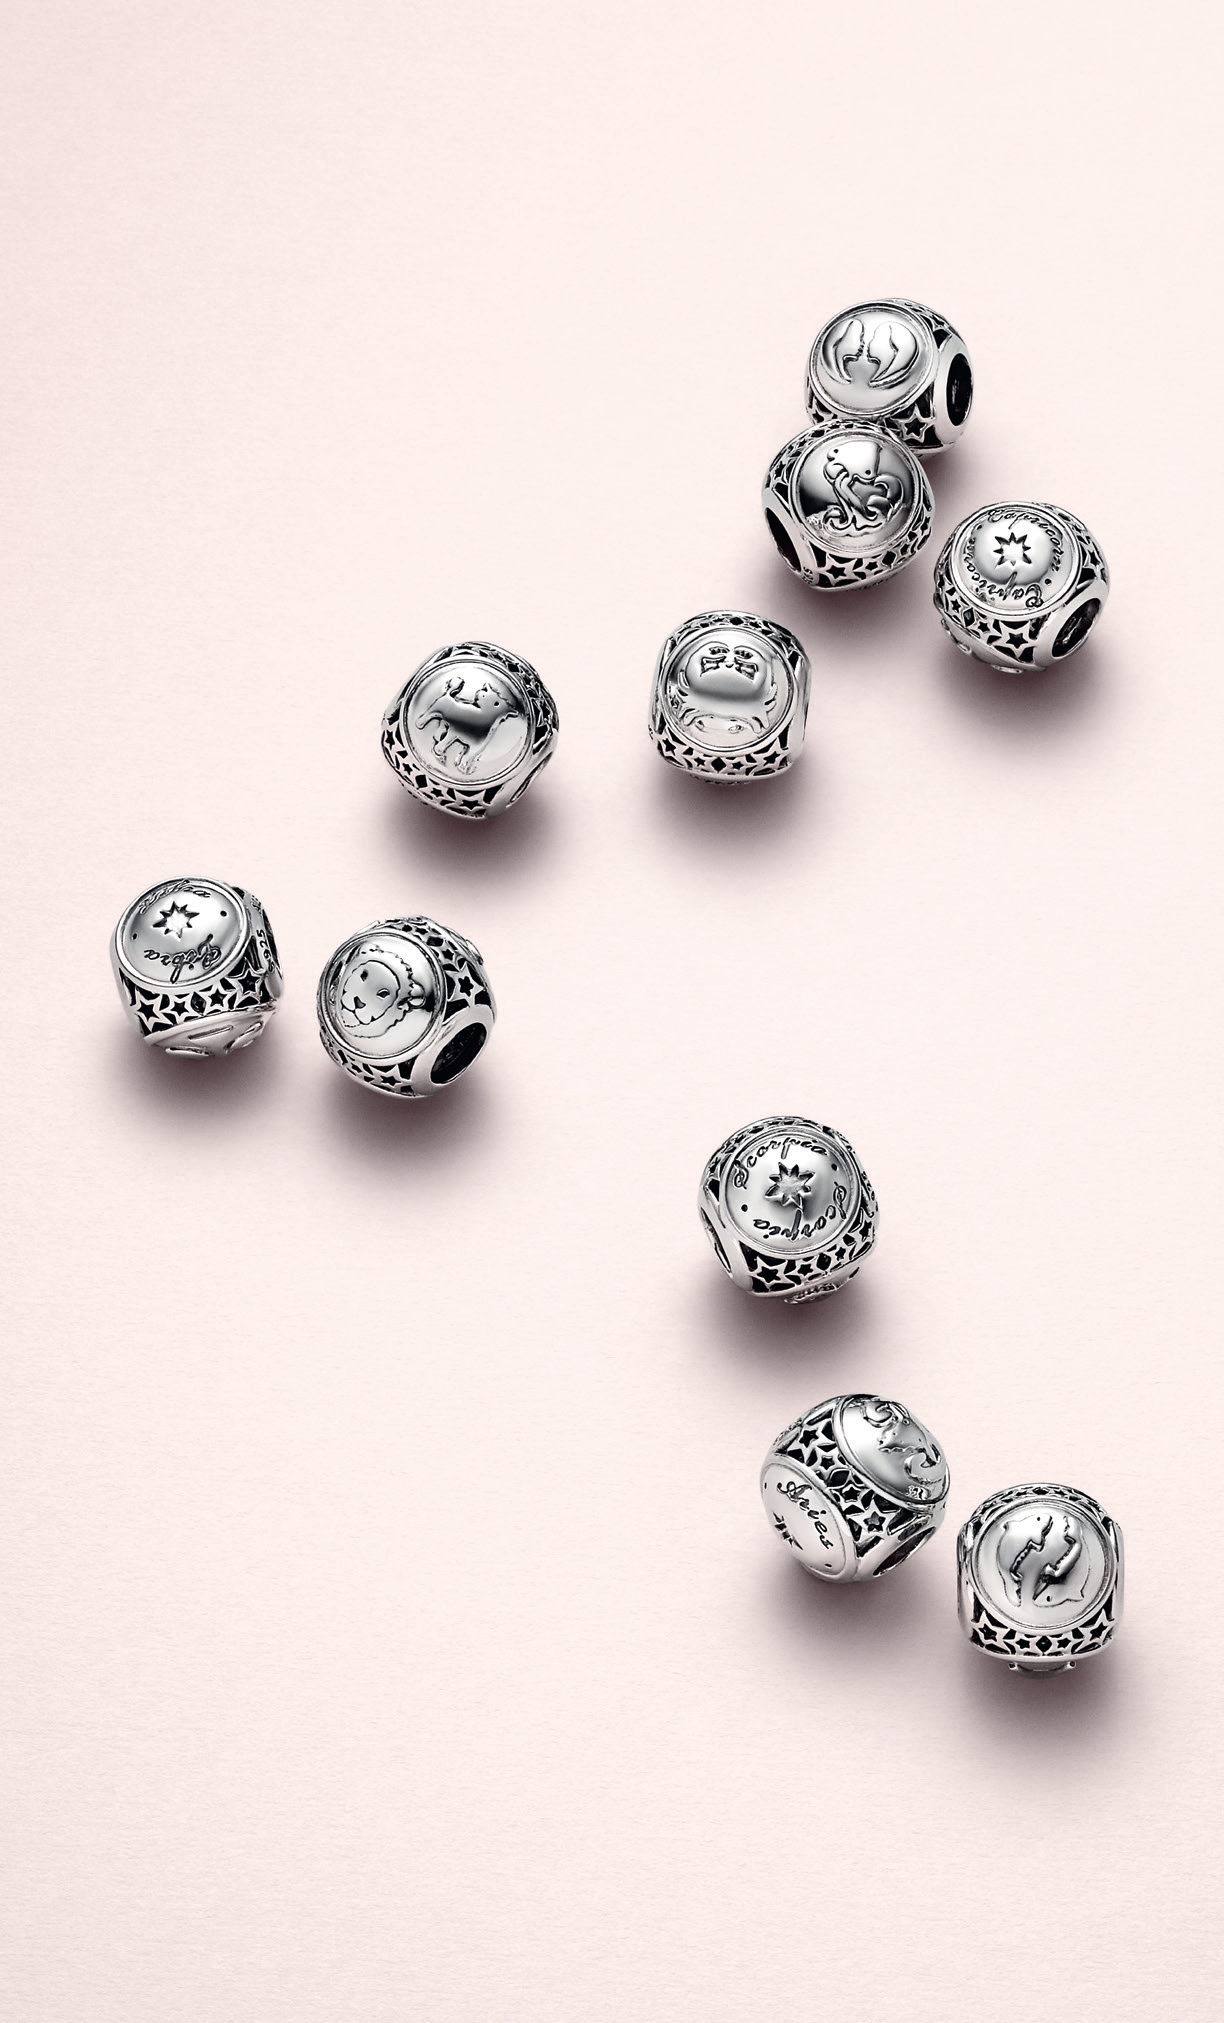 002478a85 This season, Pandora looks to the stars and presents stunning new astrology-inspired  charms.